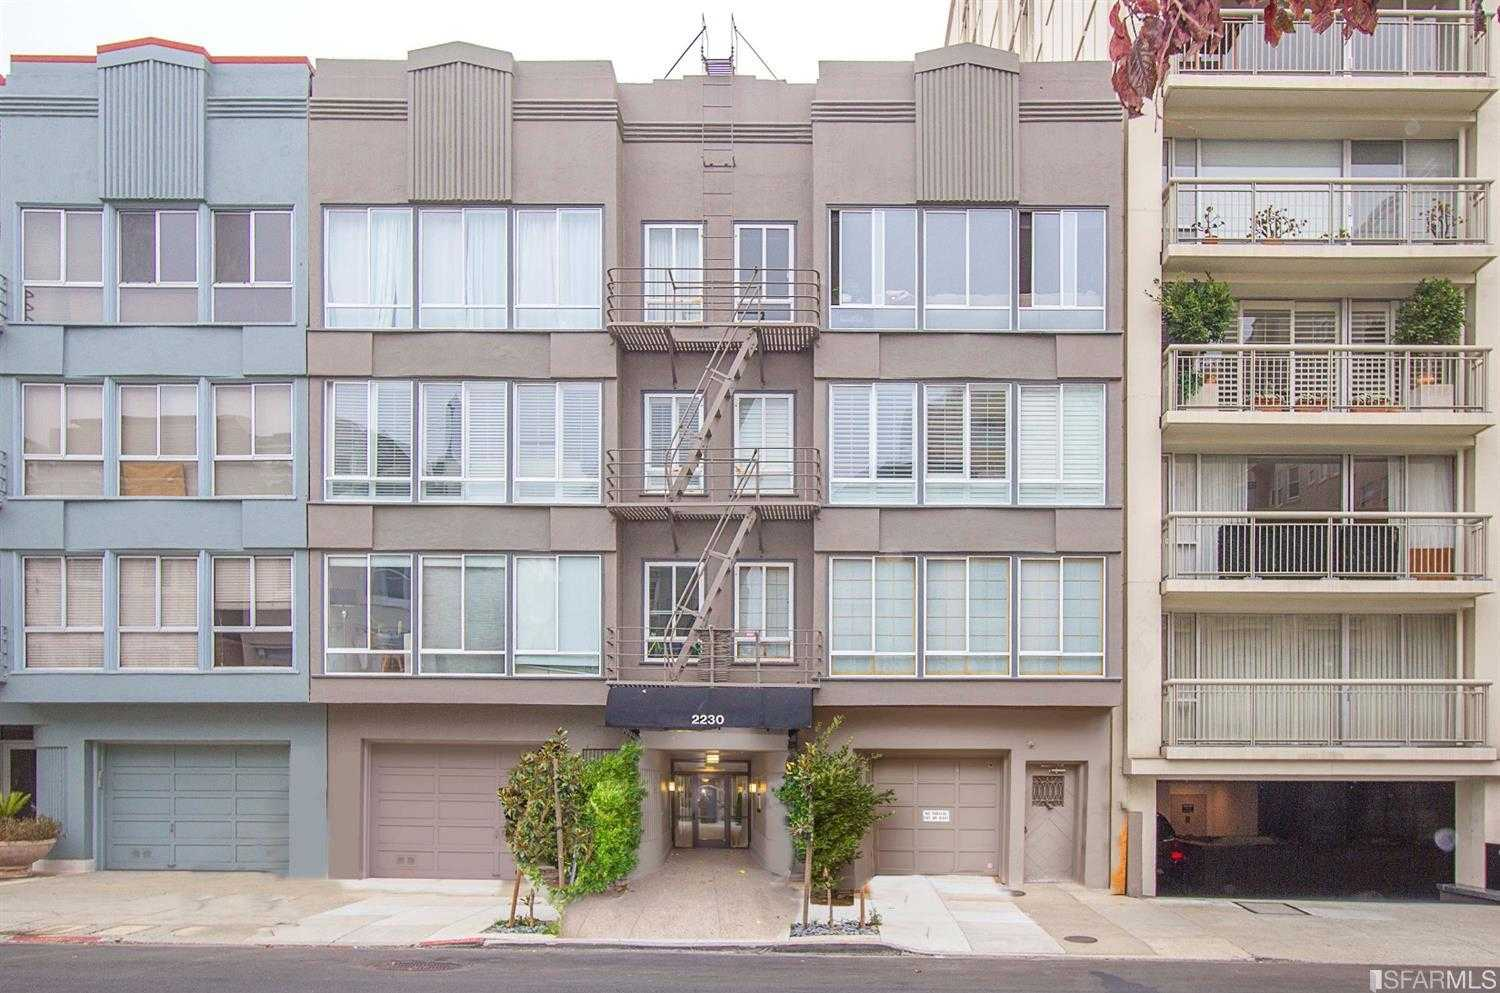 2230 Pacific Ave Apt 204 San Francisco, CA 94115